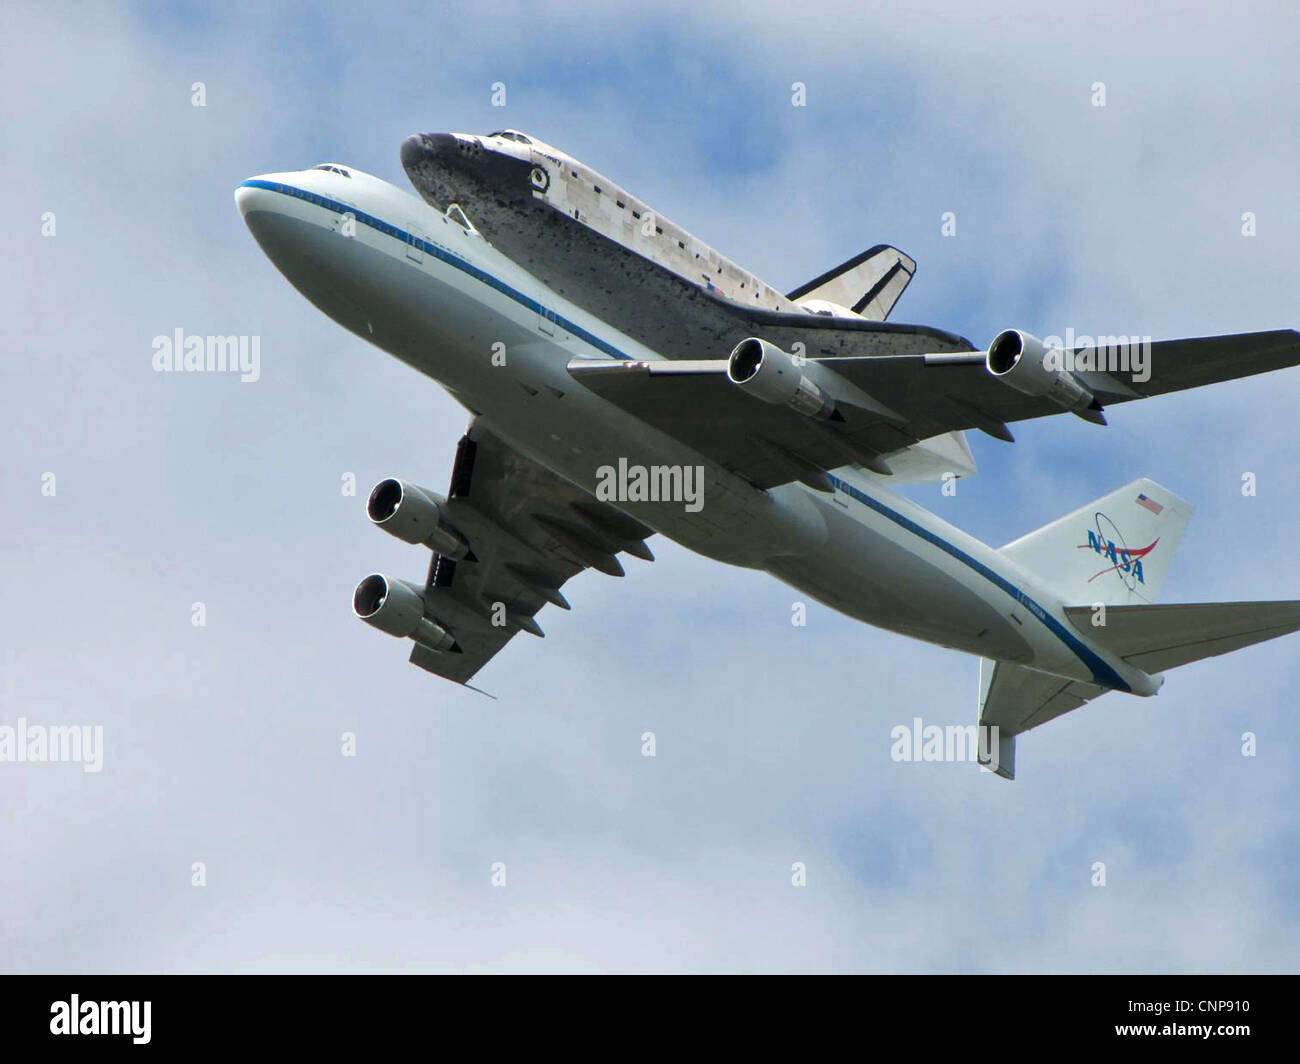 The Shuttle Carrier Aircraft Boeing 747 transporting space ...